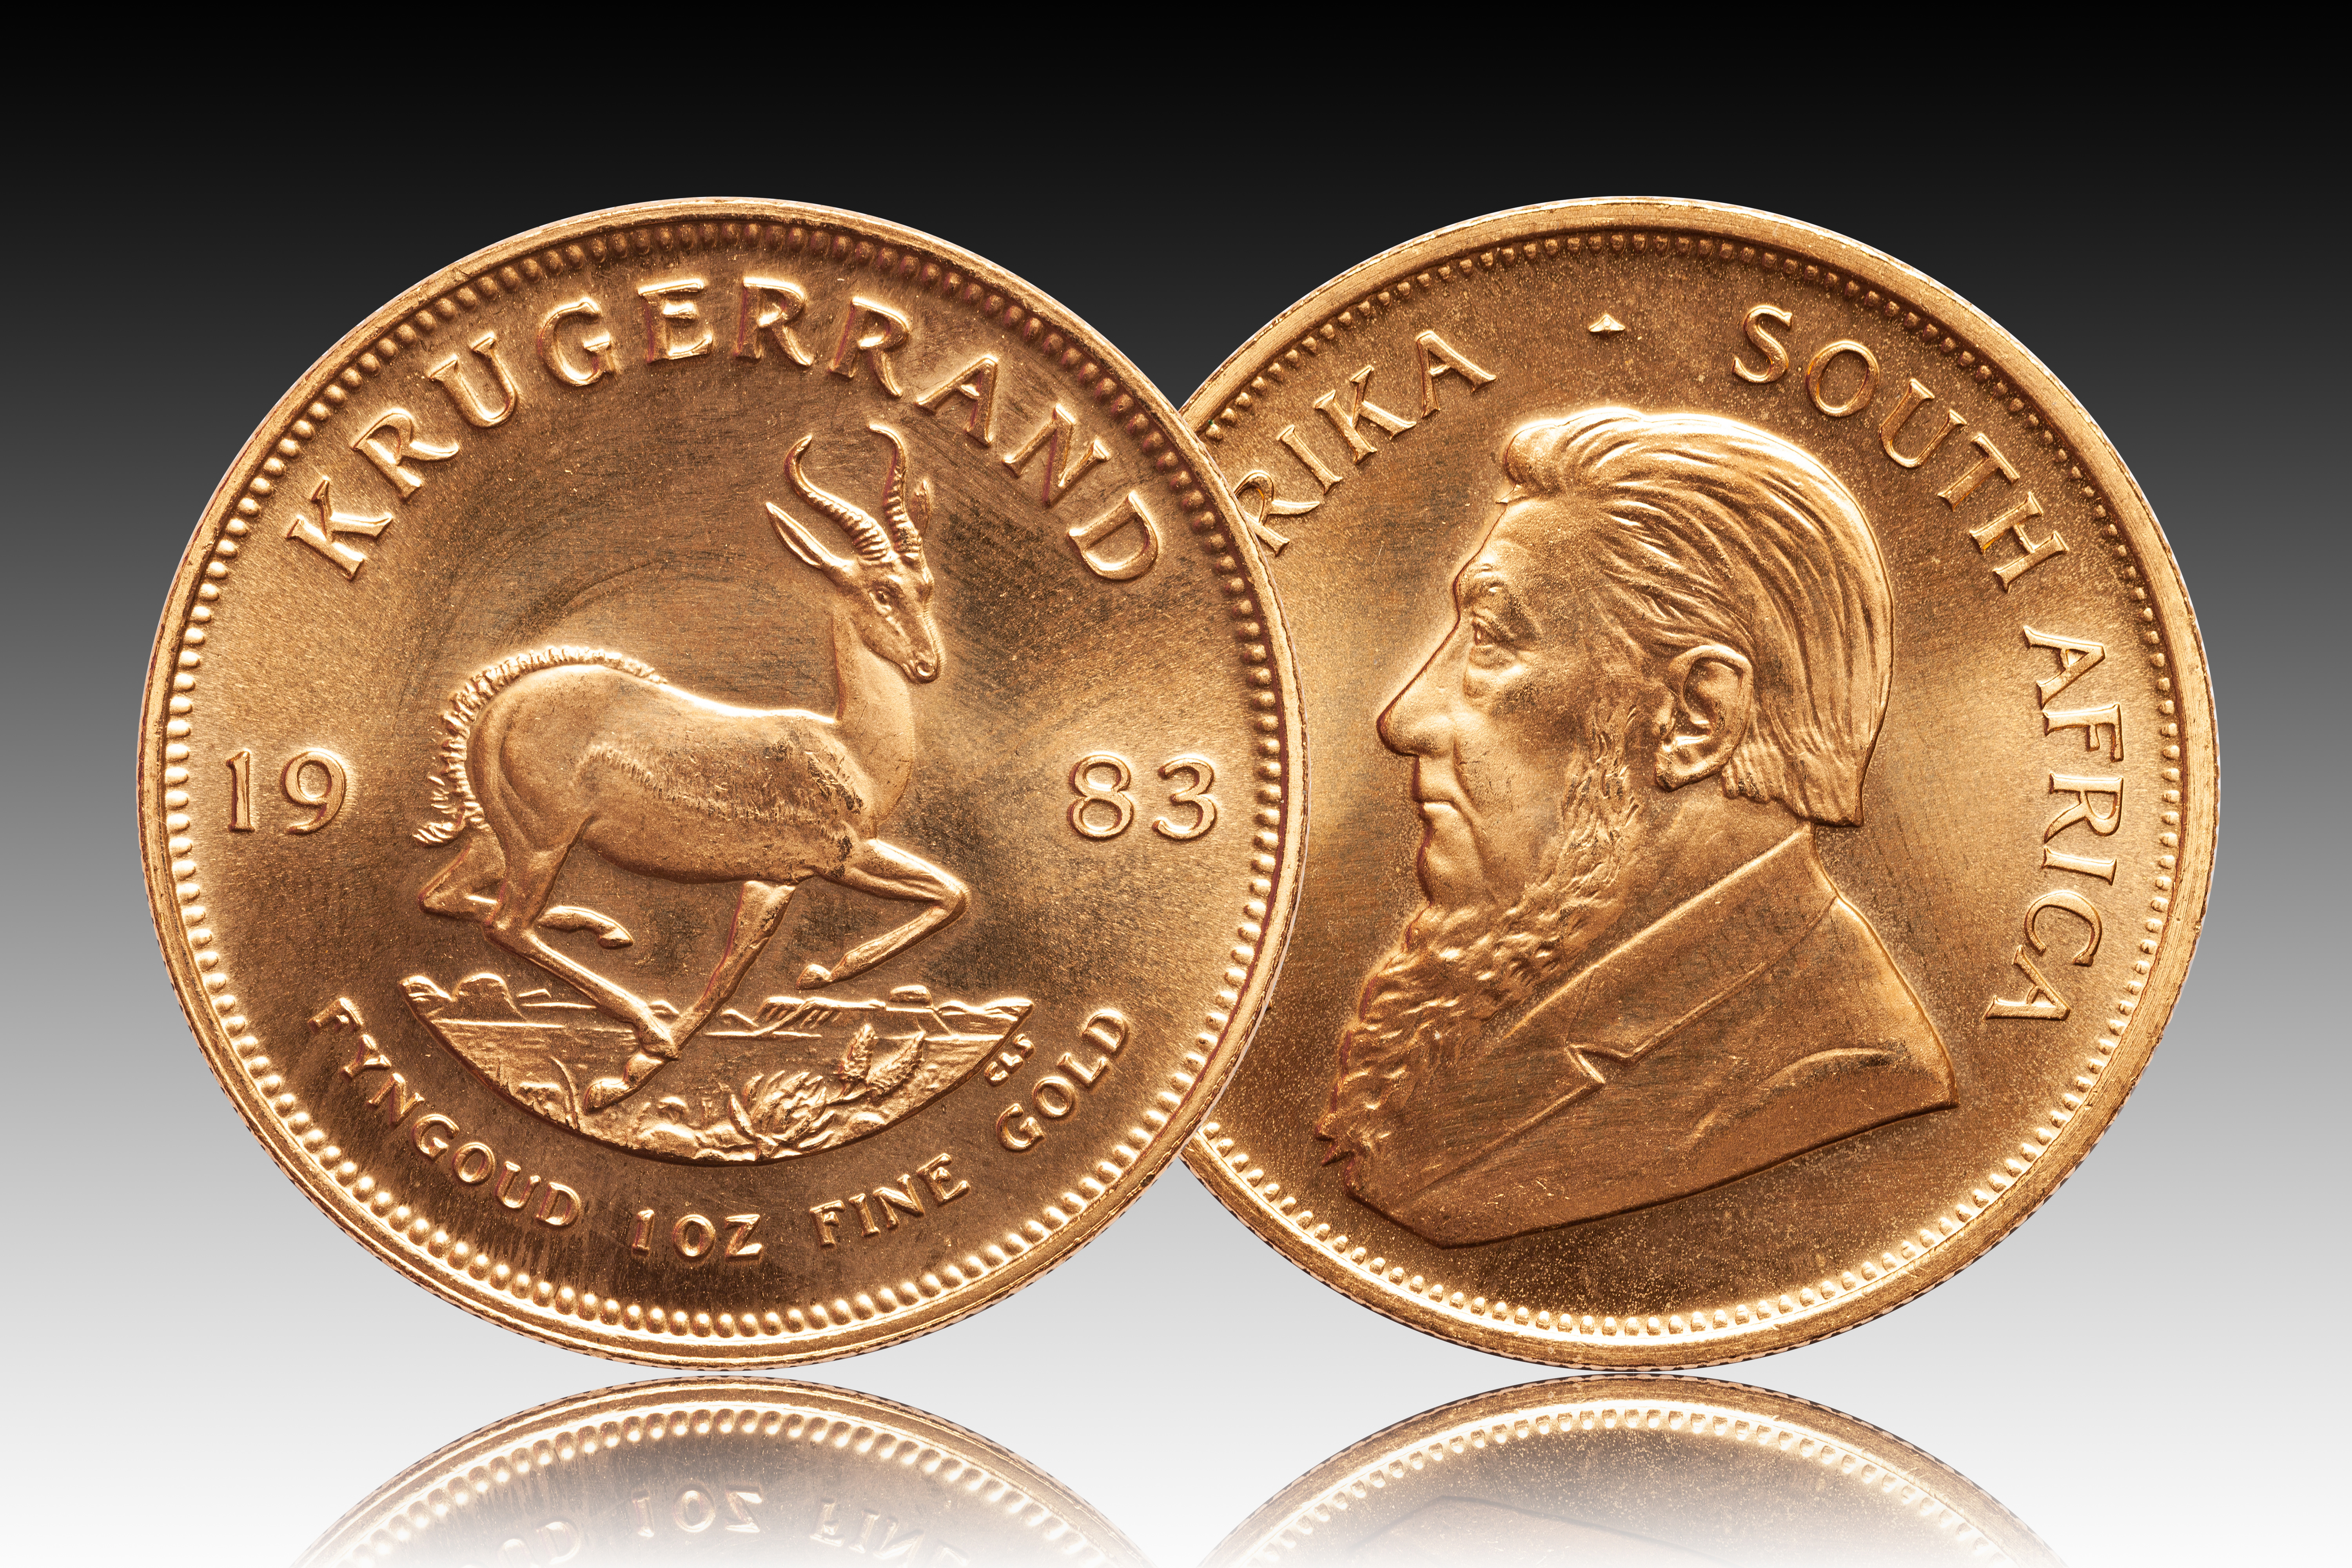 Rare Coins And Bars